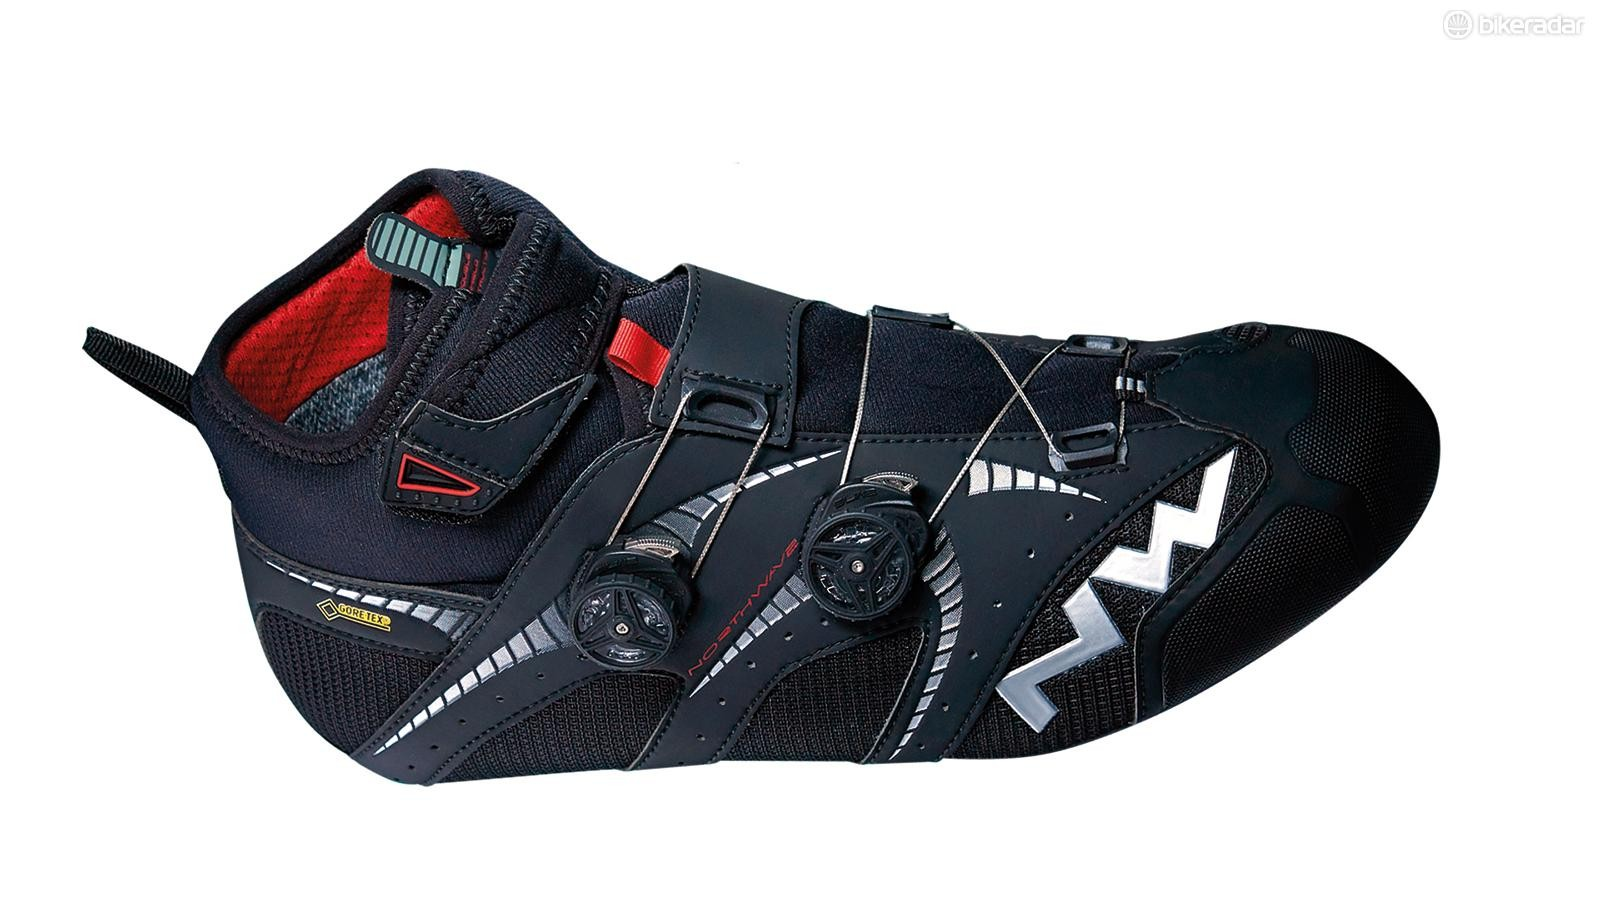 Northwave Extreme GTX winter boots